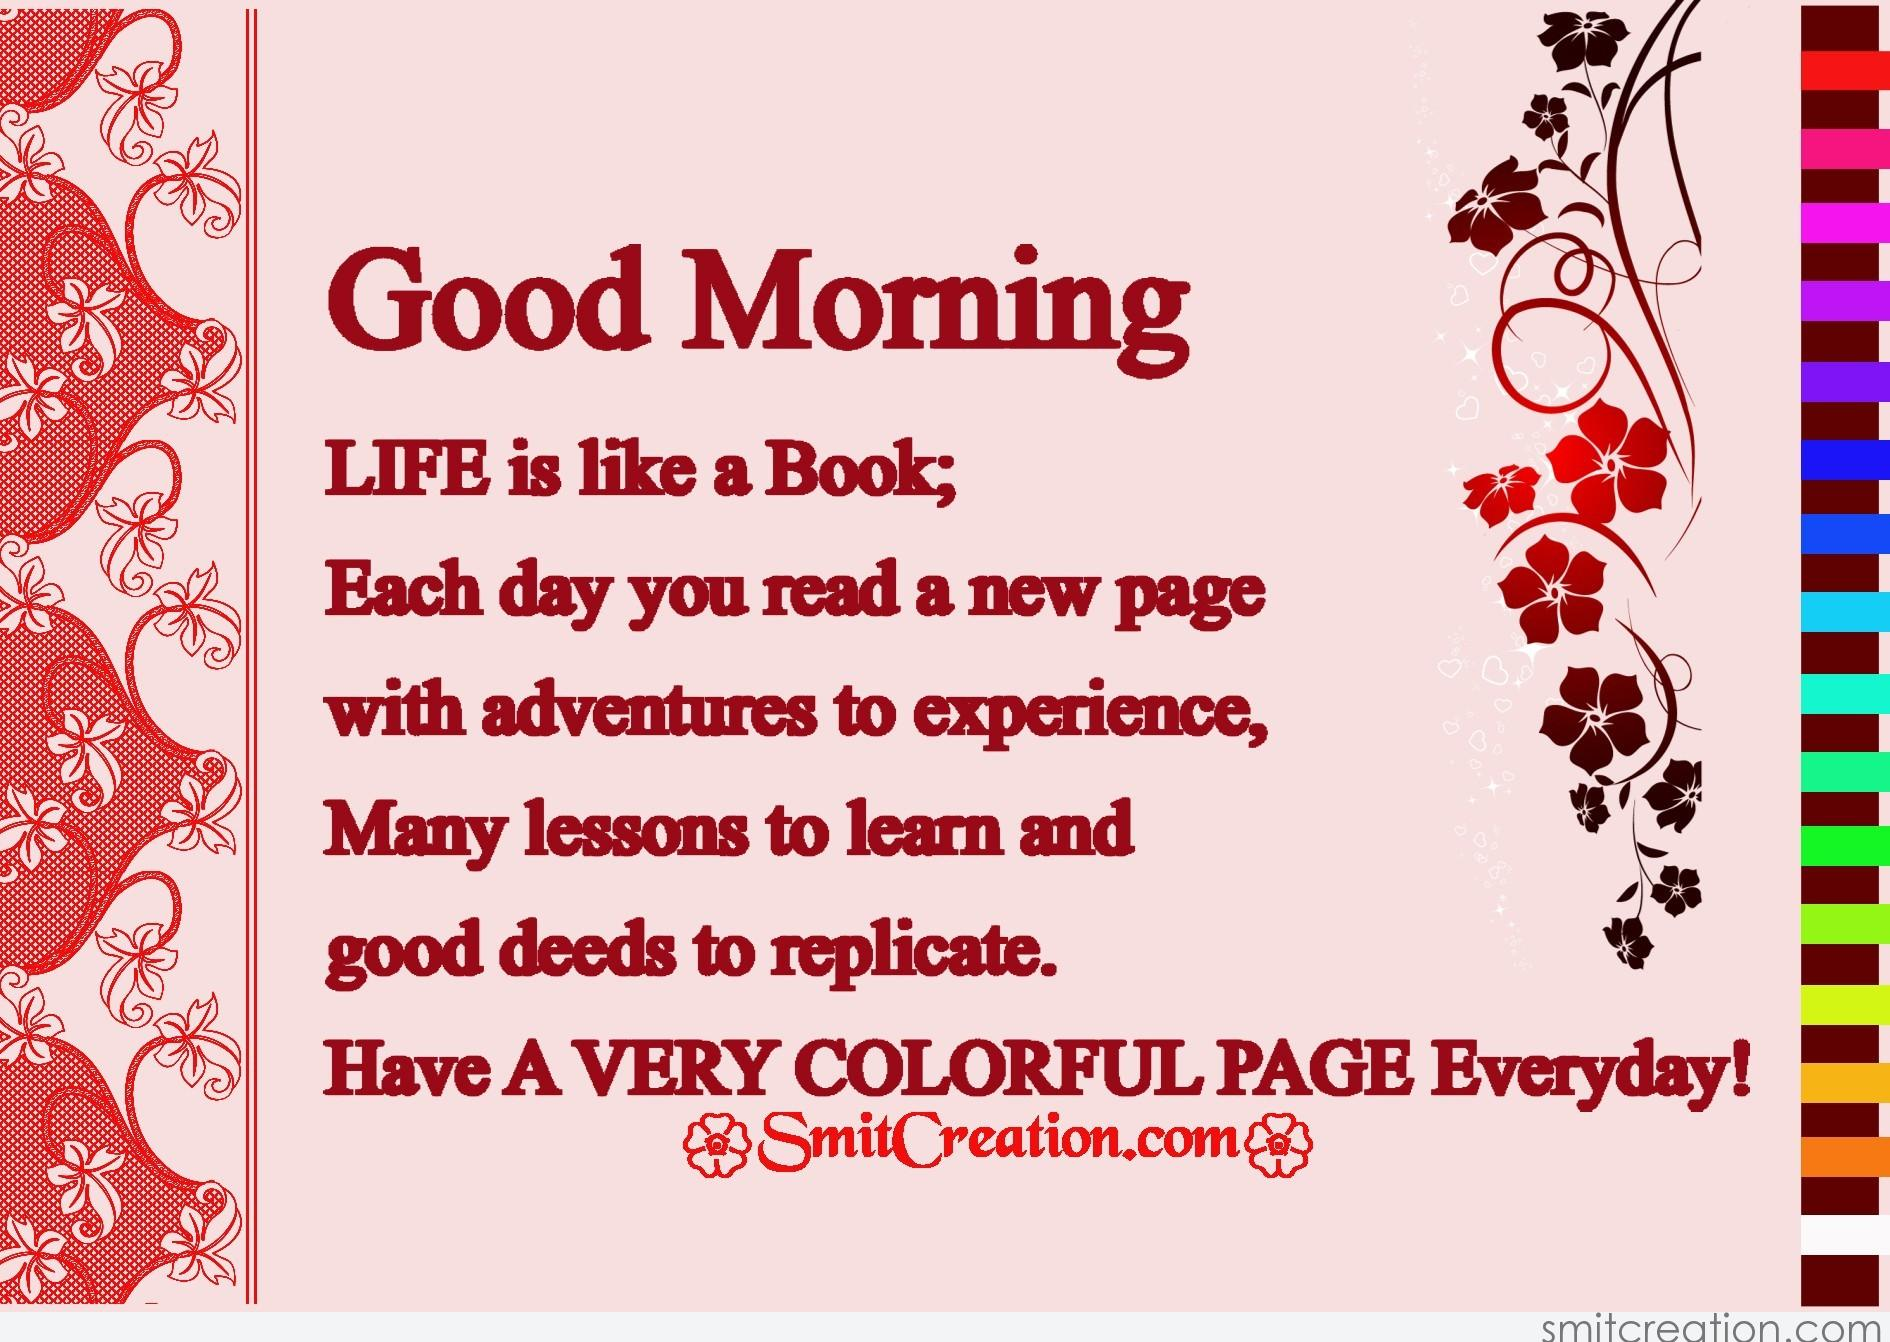 Good Morning Life Pictures And Graphics Smitcreation Com Page 6